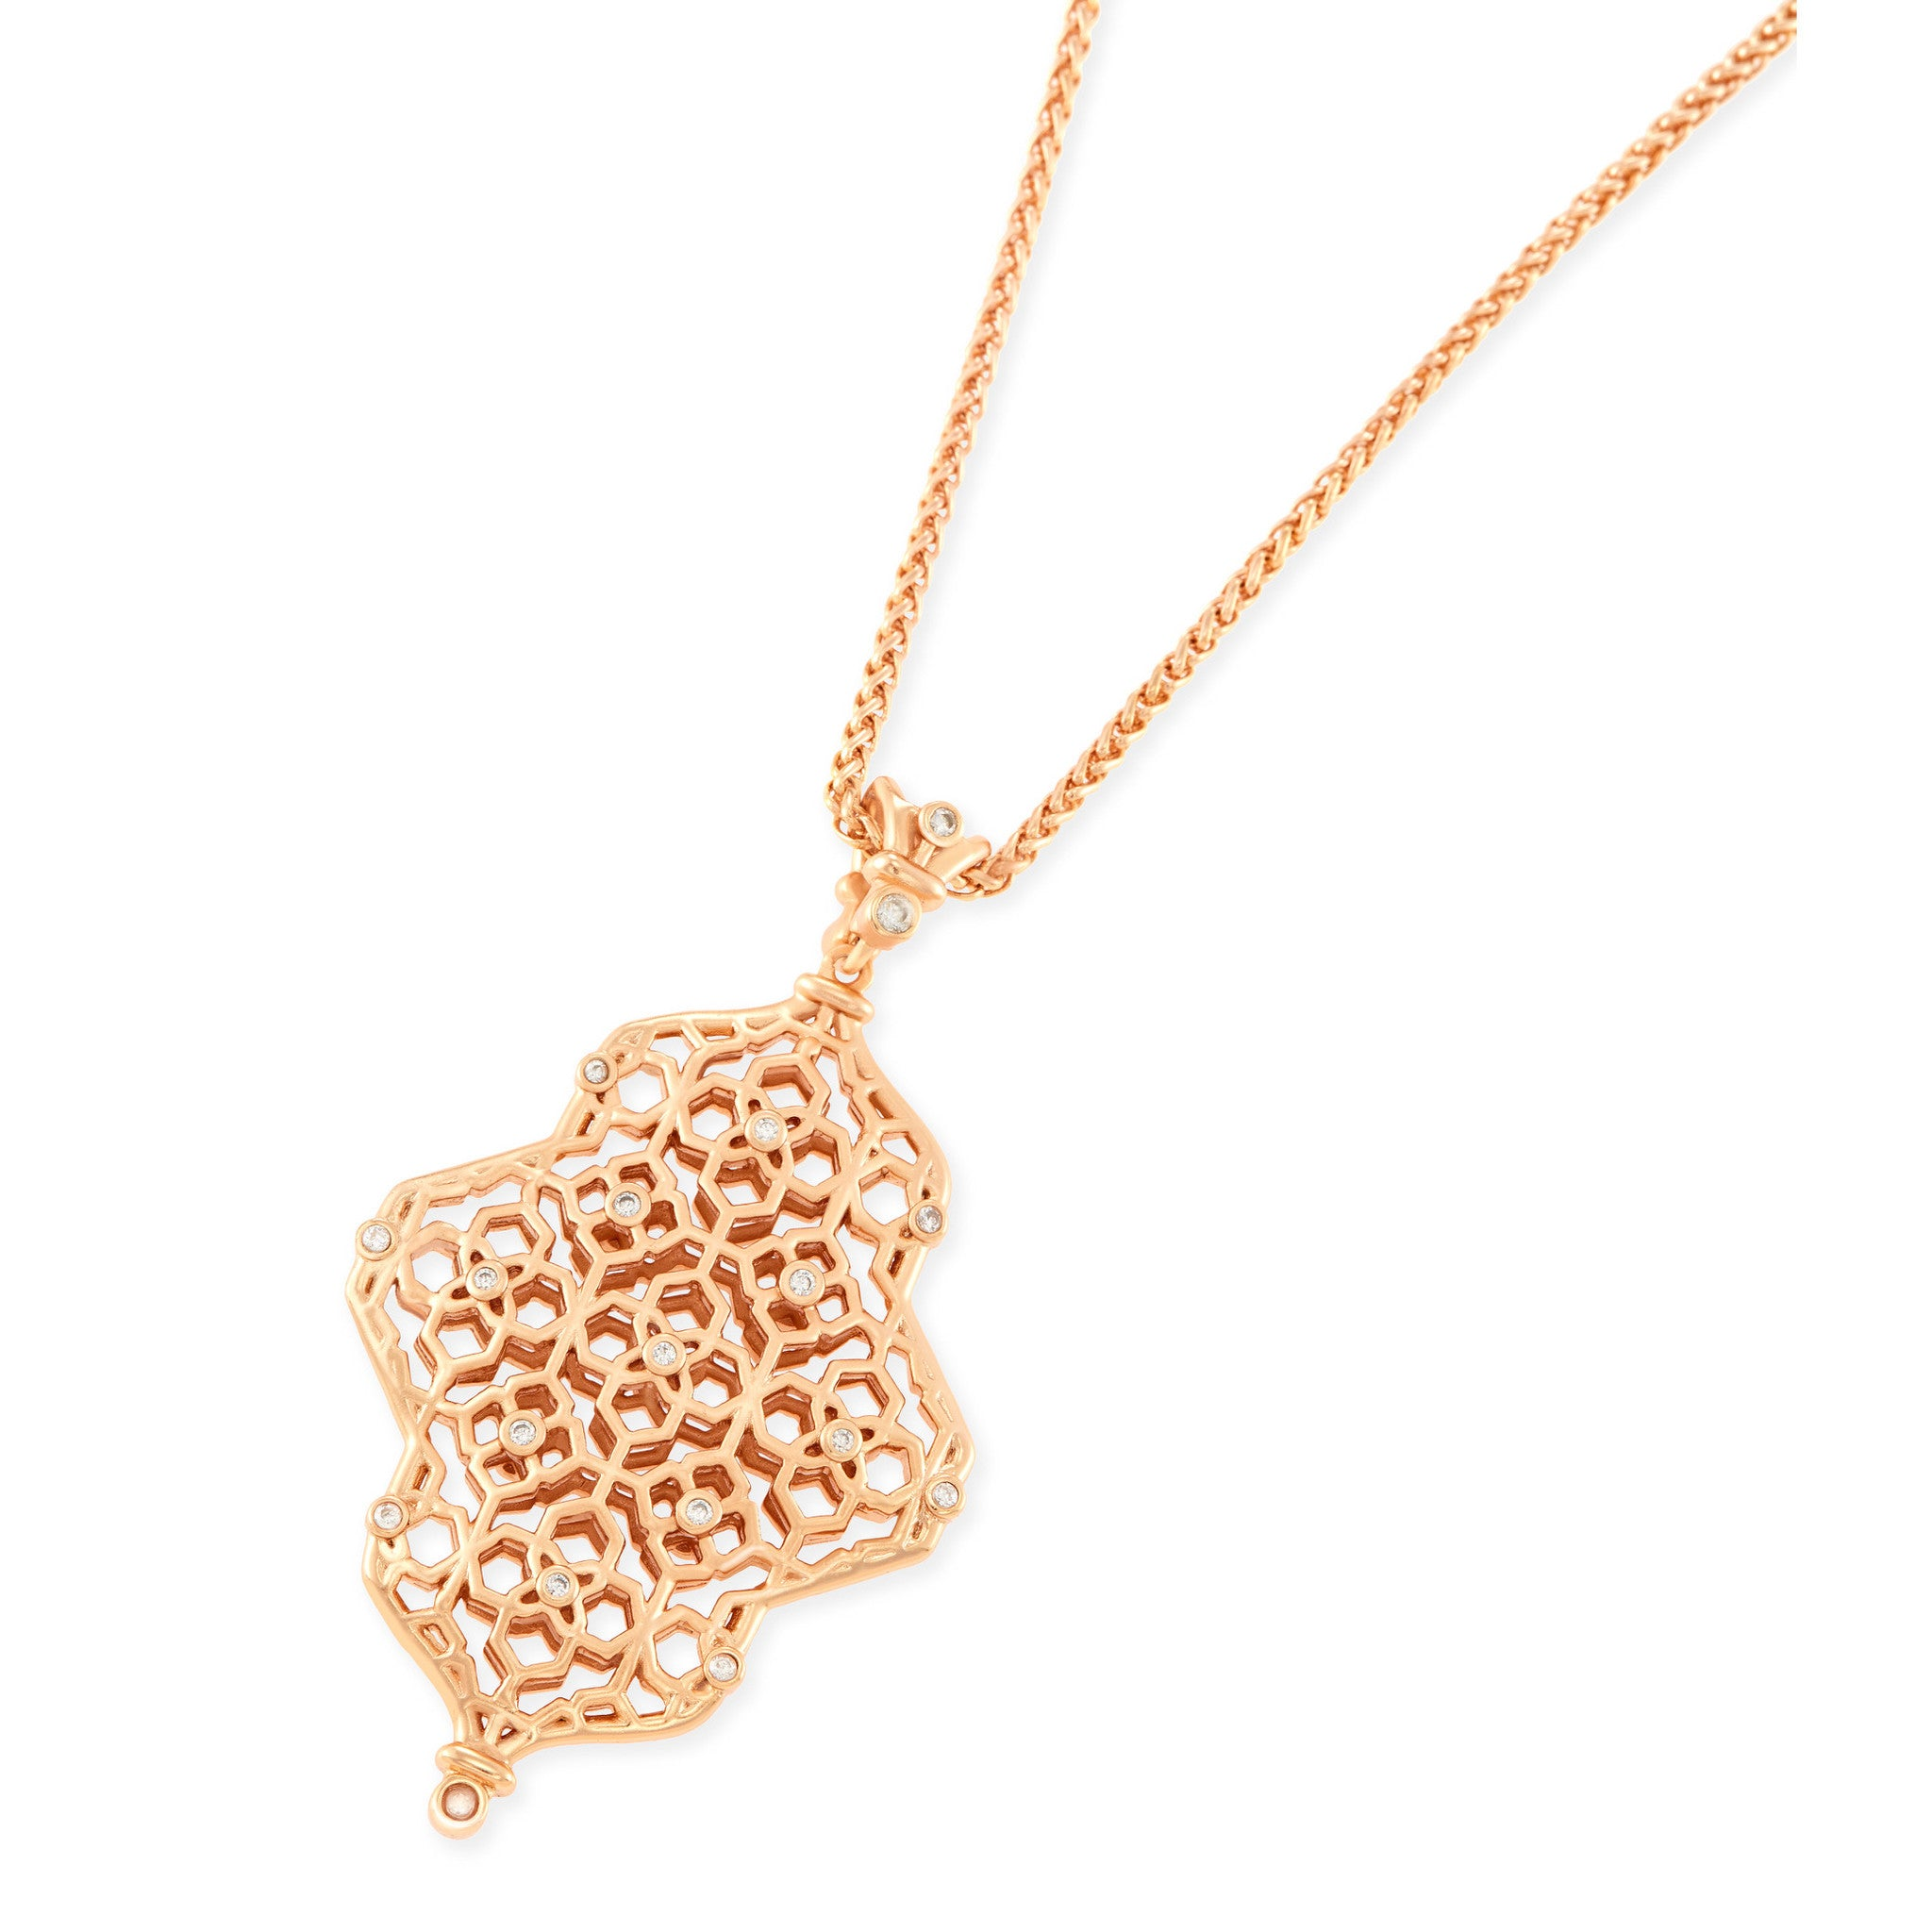 Kathy Long Necklace in Rose Gold